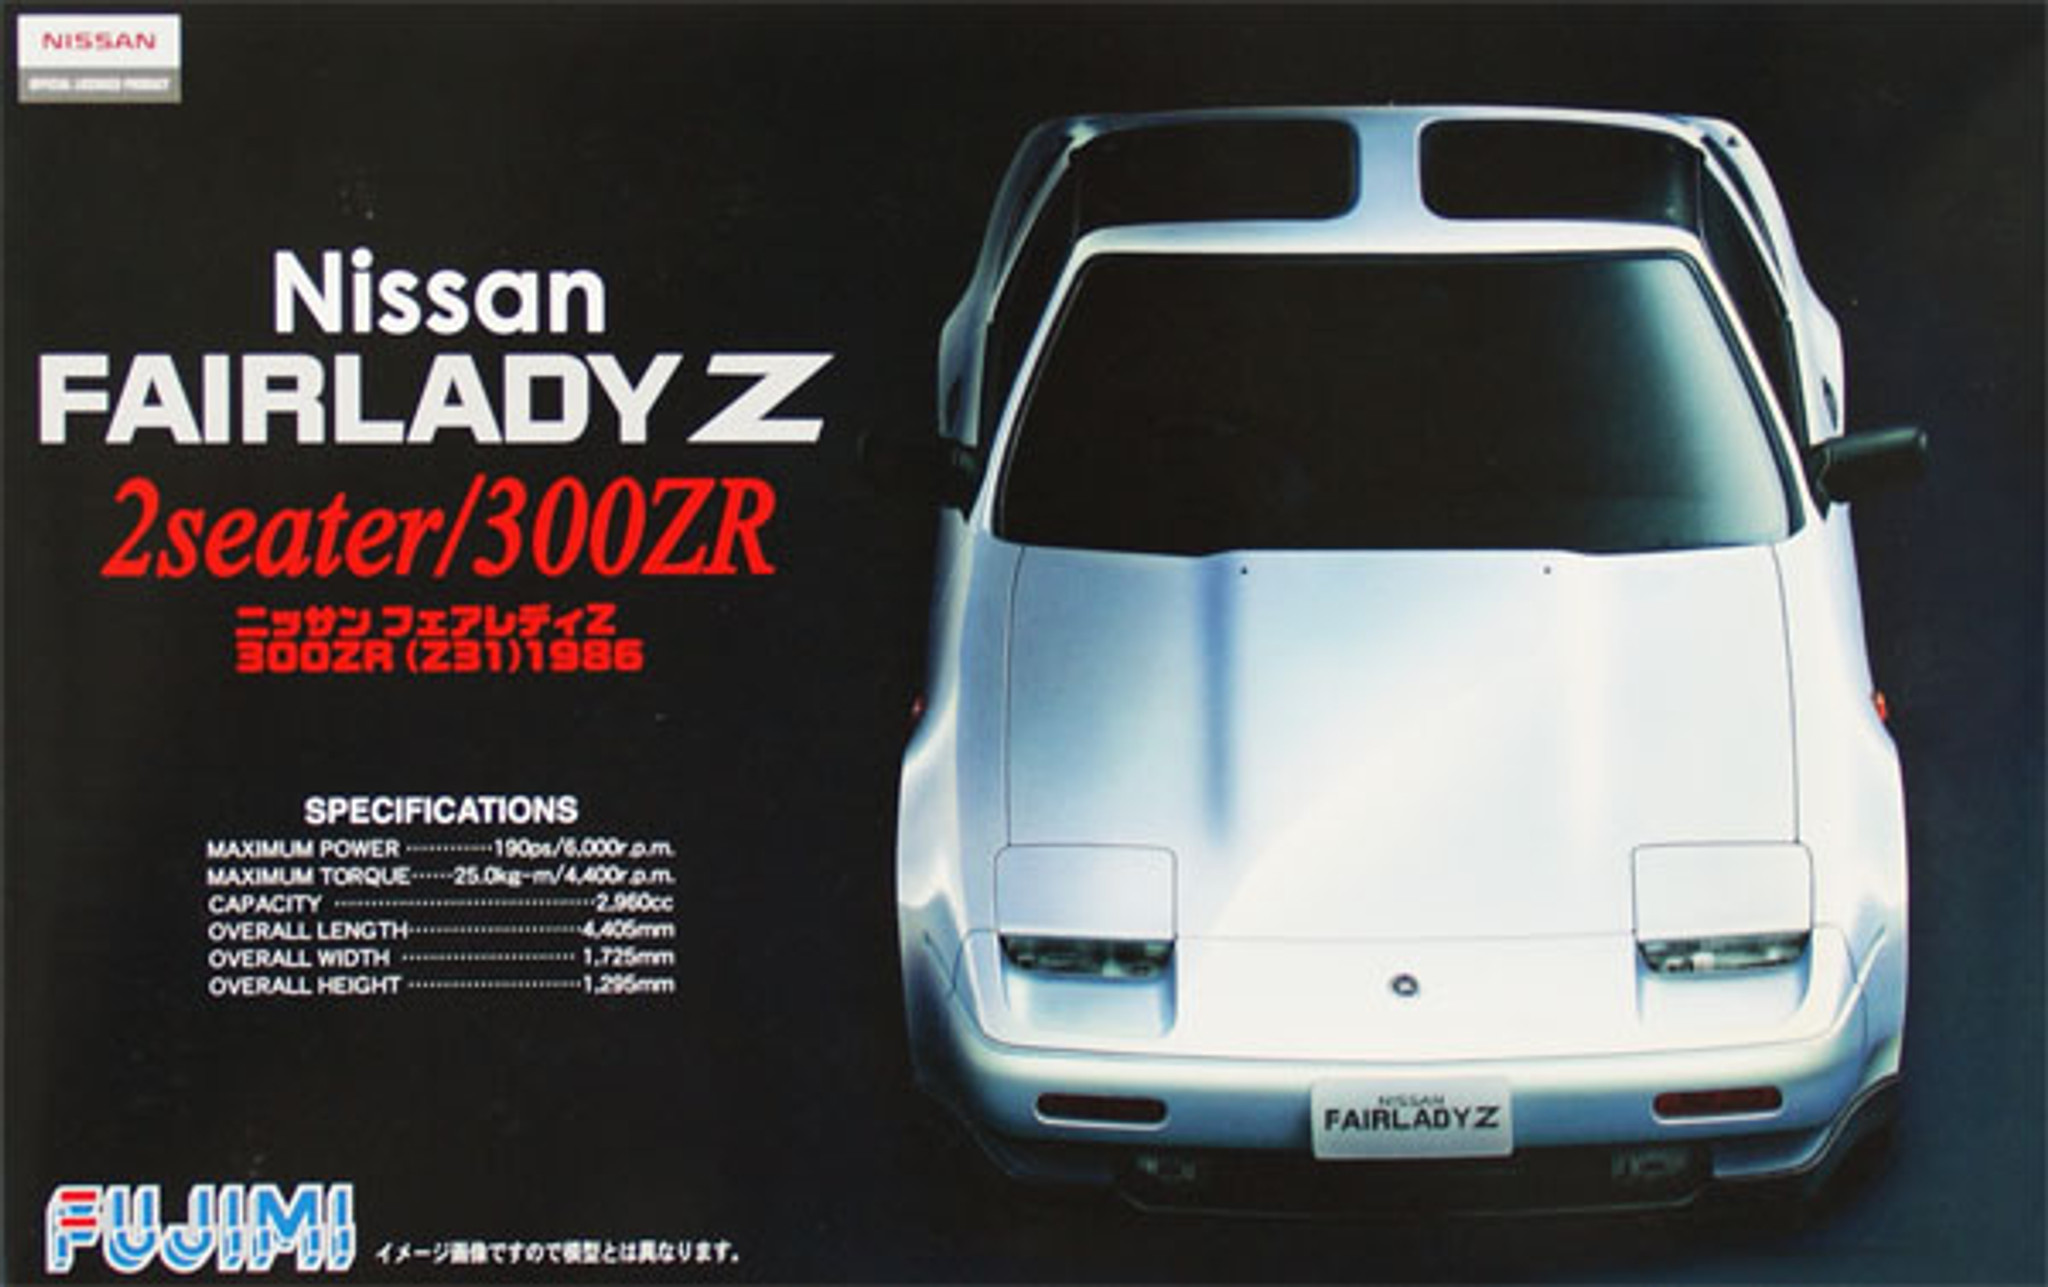 Image result for Fujimi Nissan fairlady z 2seater/300zr